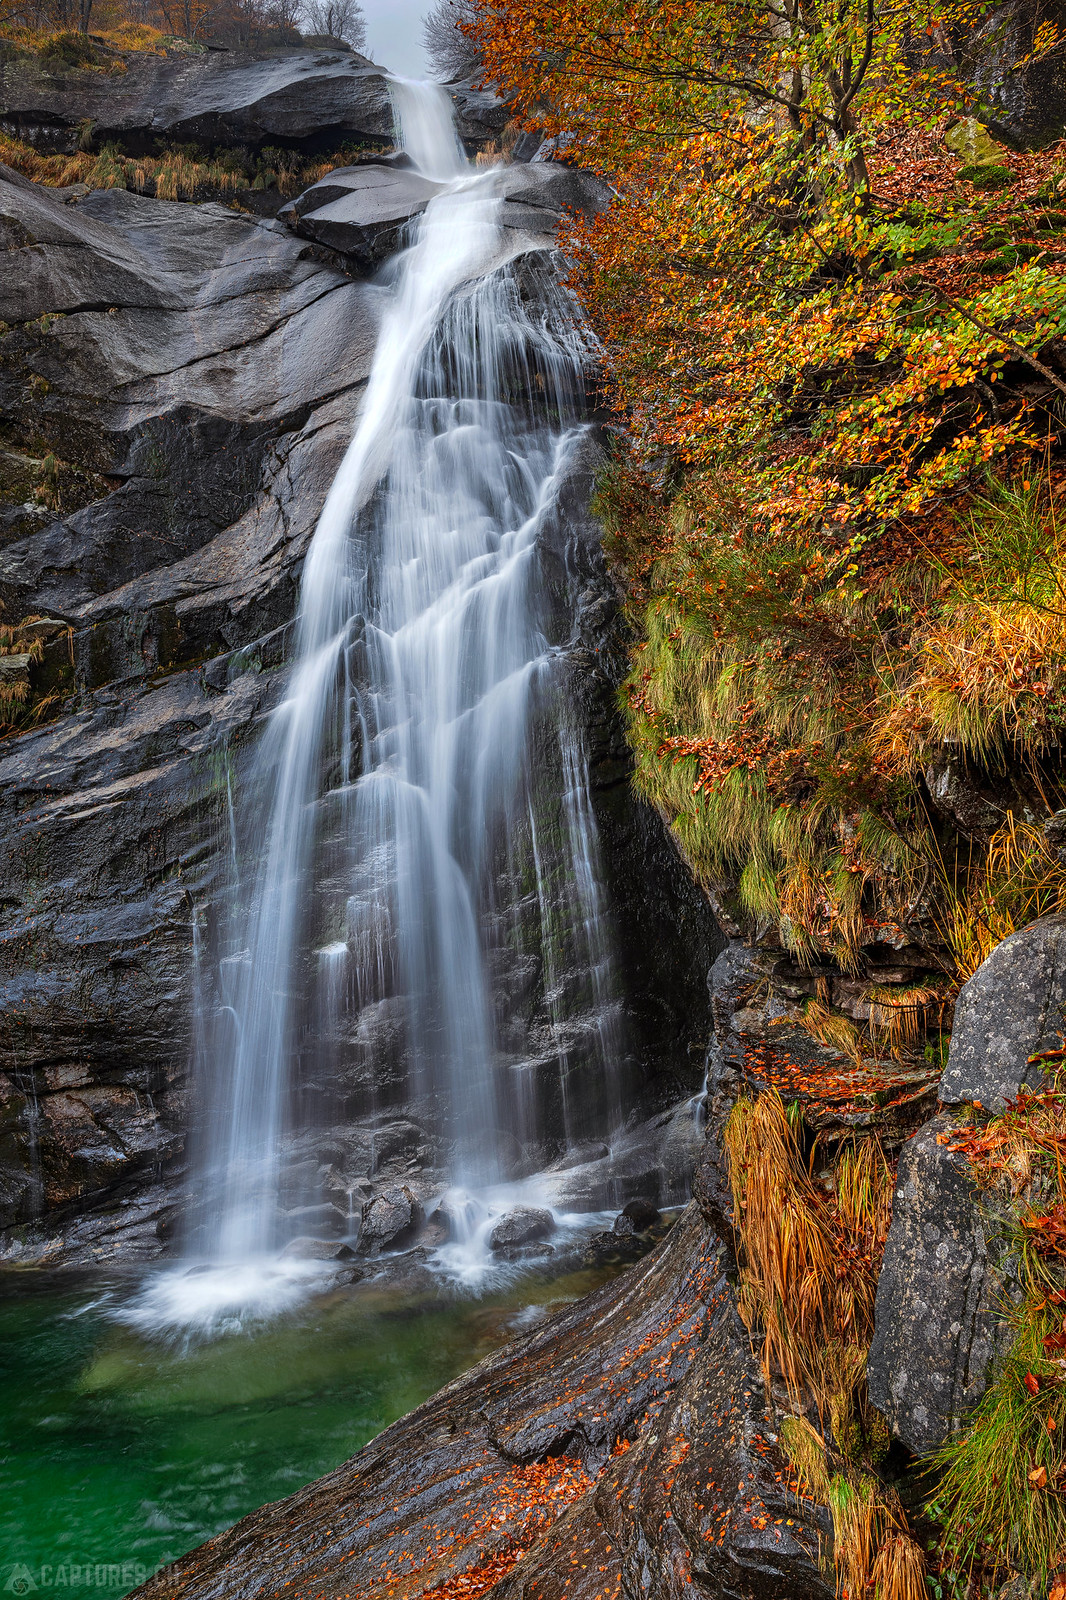 Hidden Waterfall - Verzasca